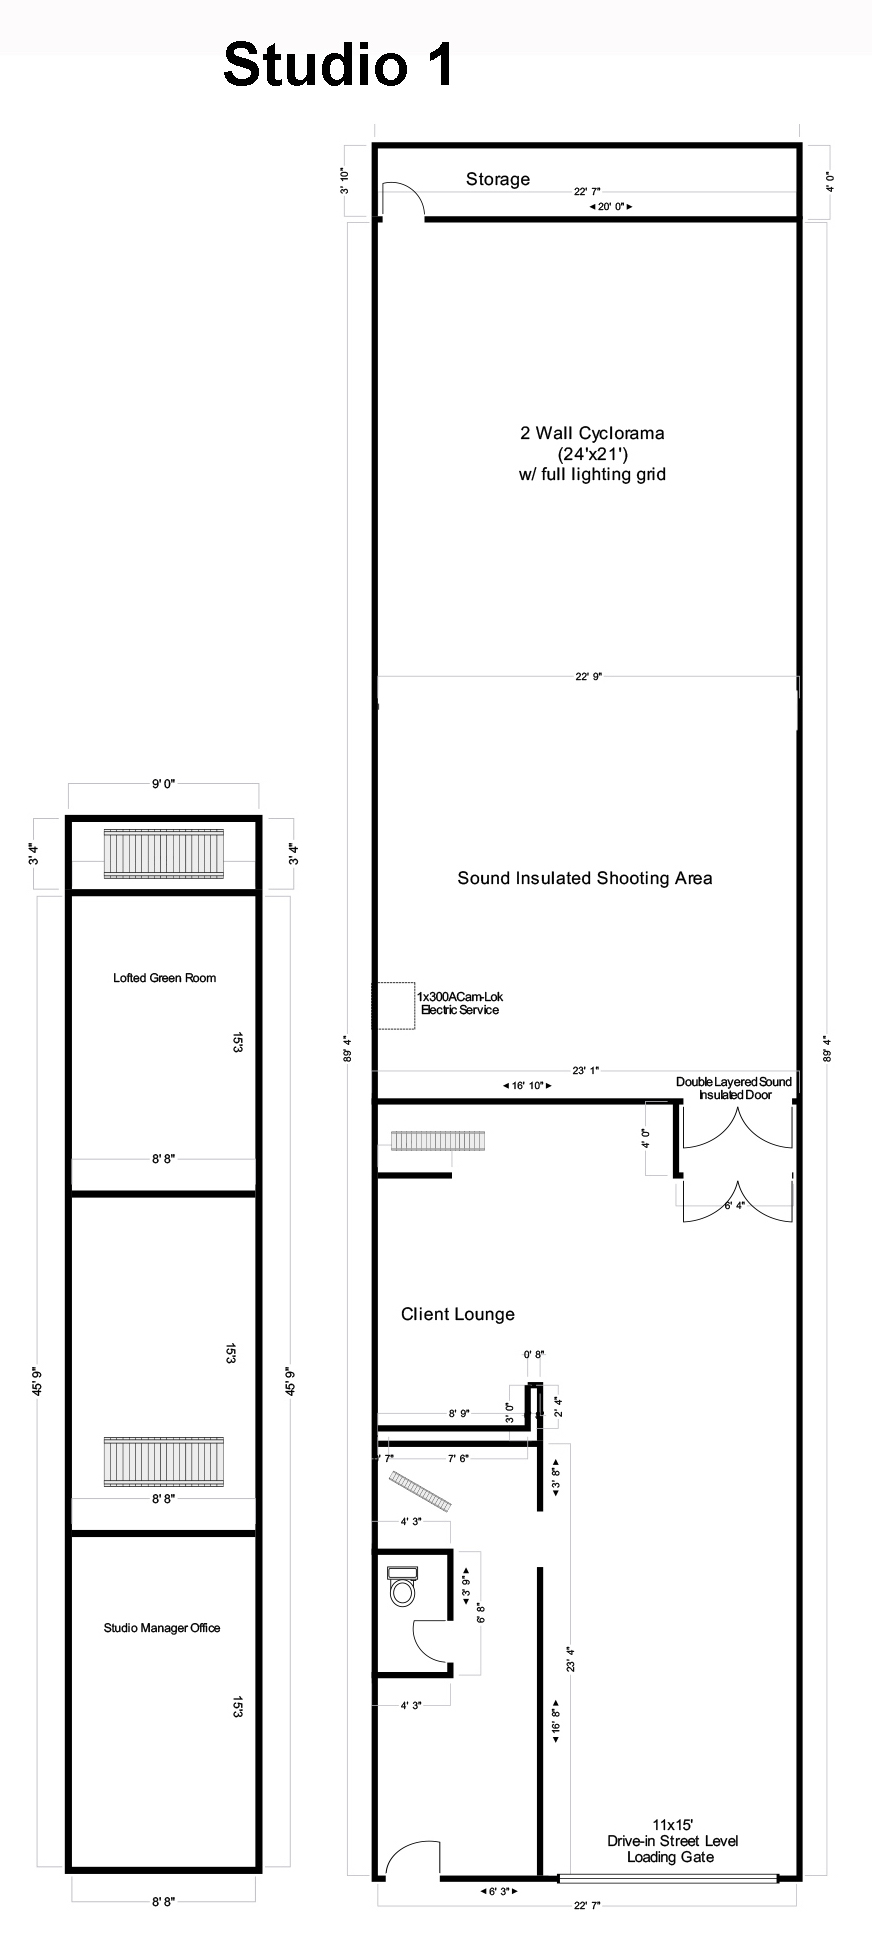 be-electric-Studio-1-Floor-Plan.jpg